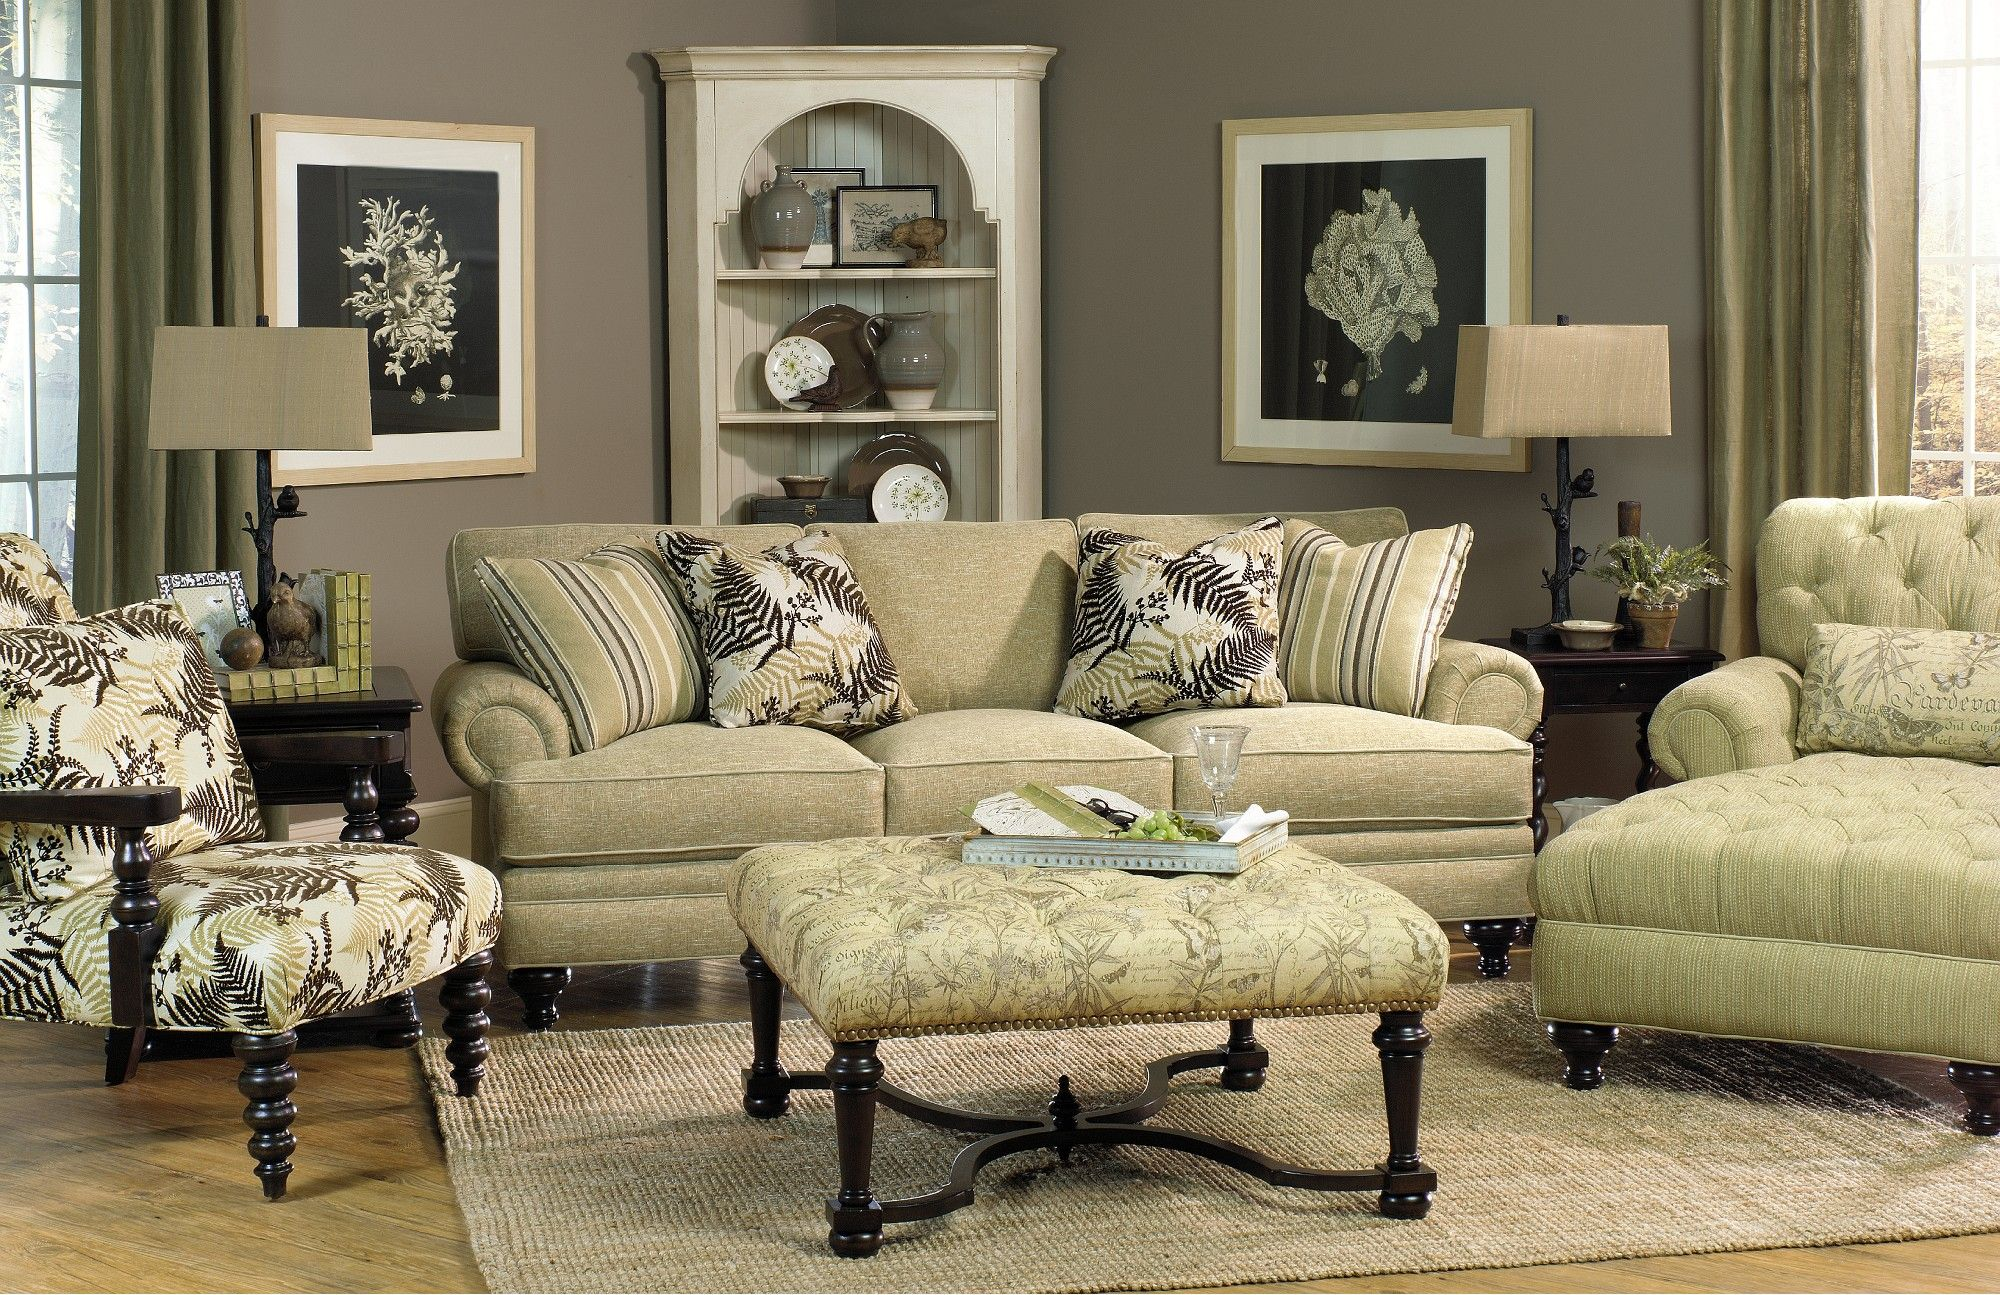 Paula deen furniture collection paula deen sugar hill for Family lounge furniture